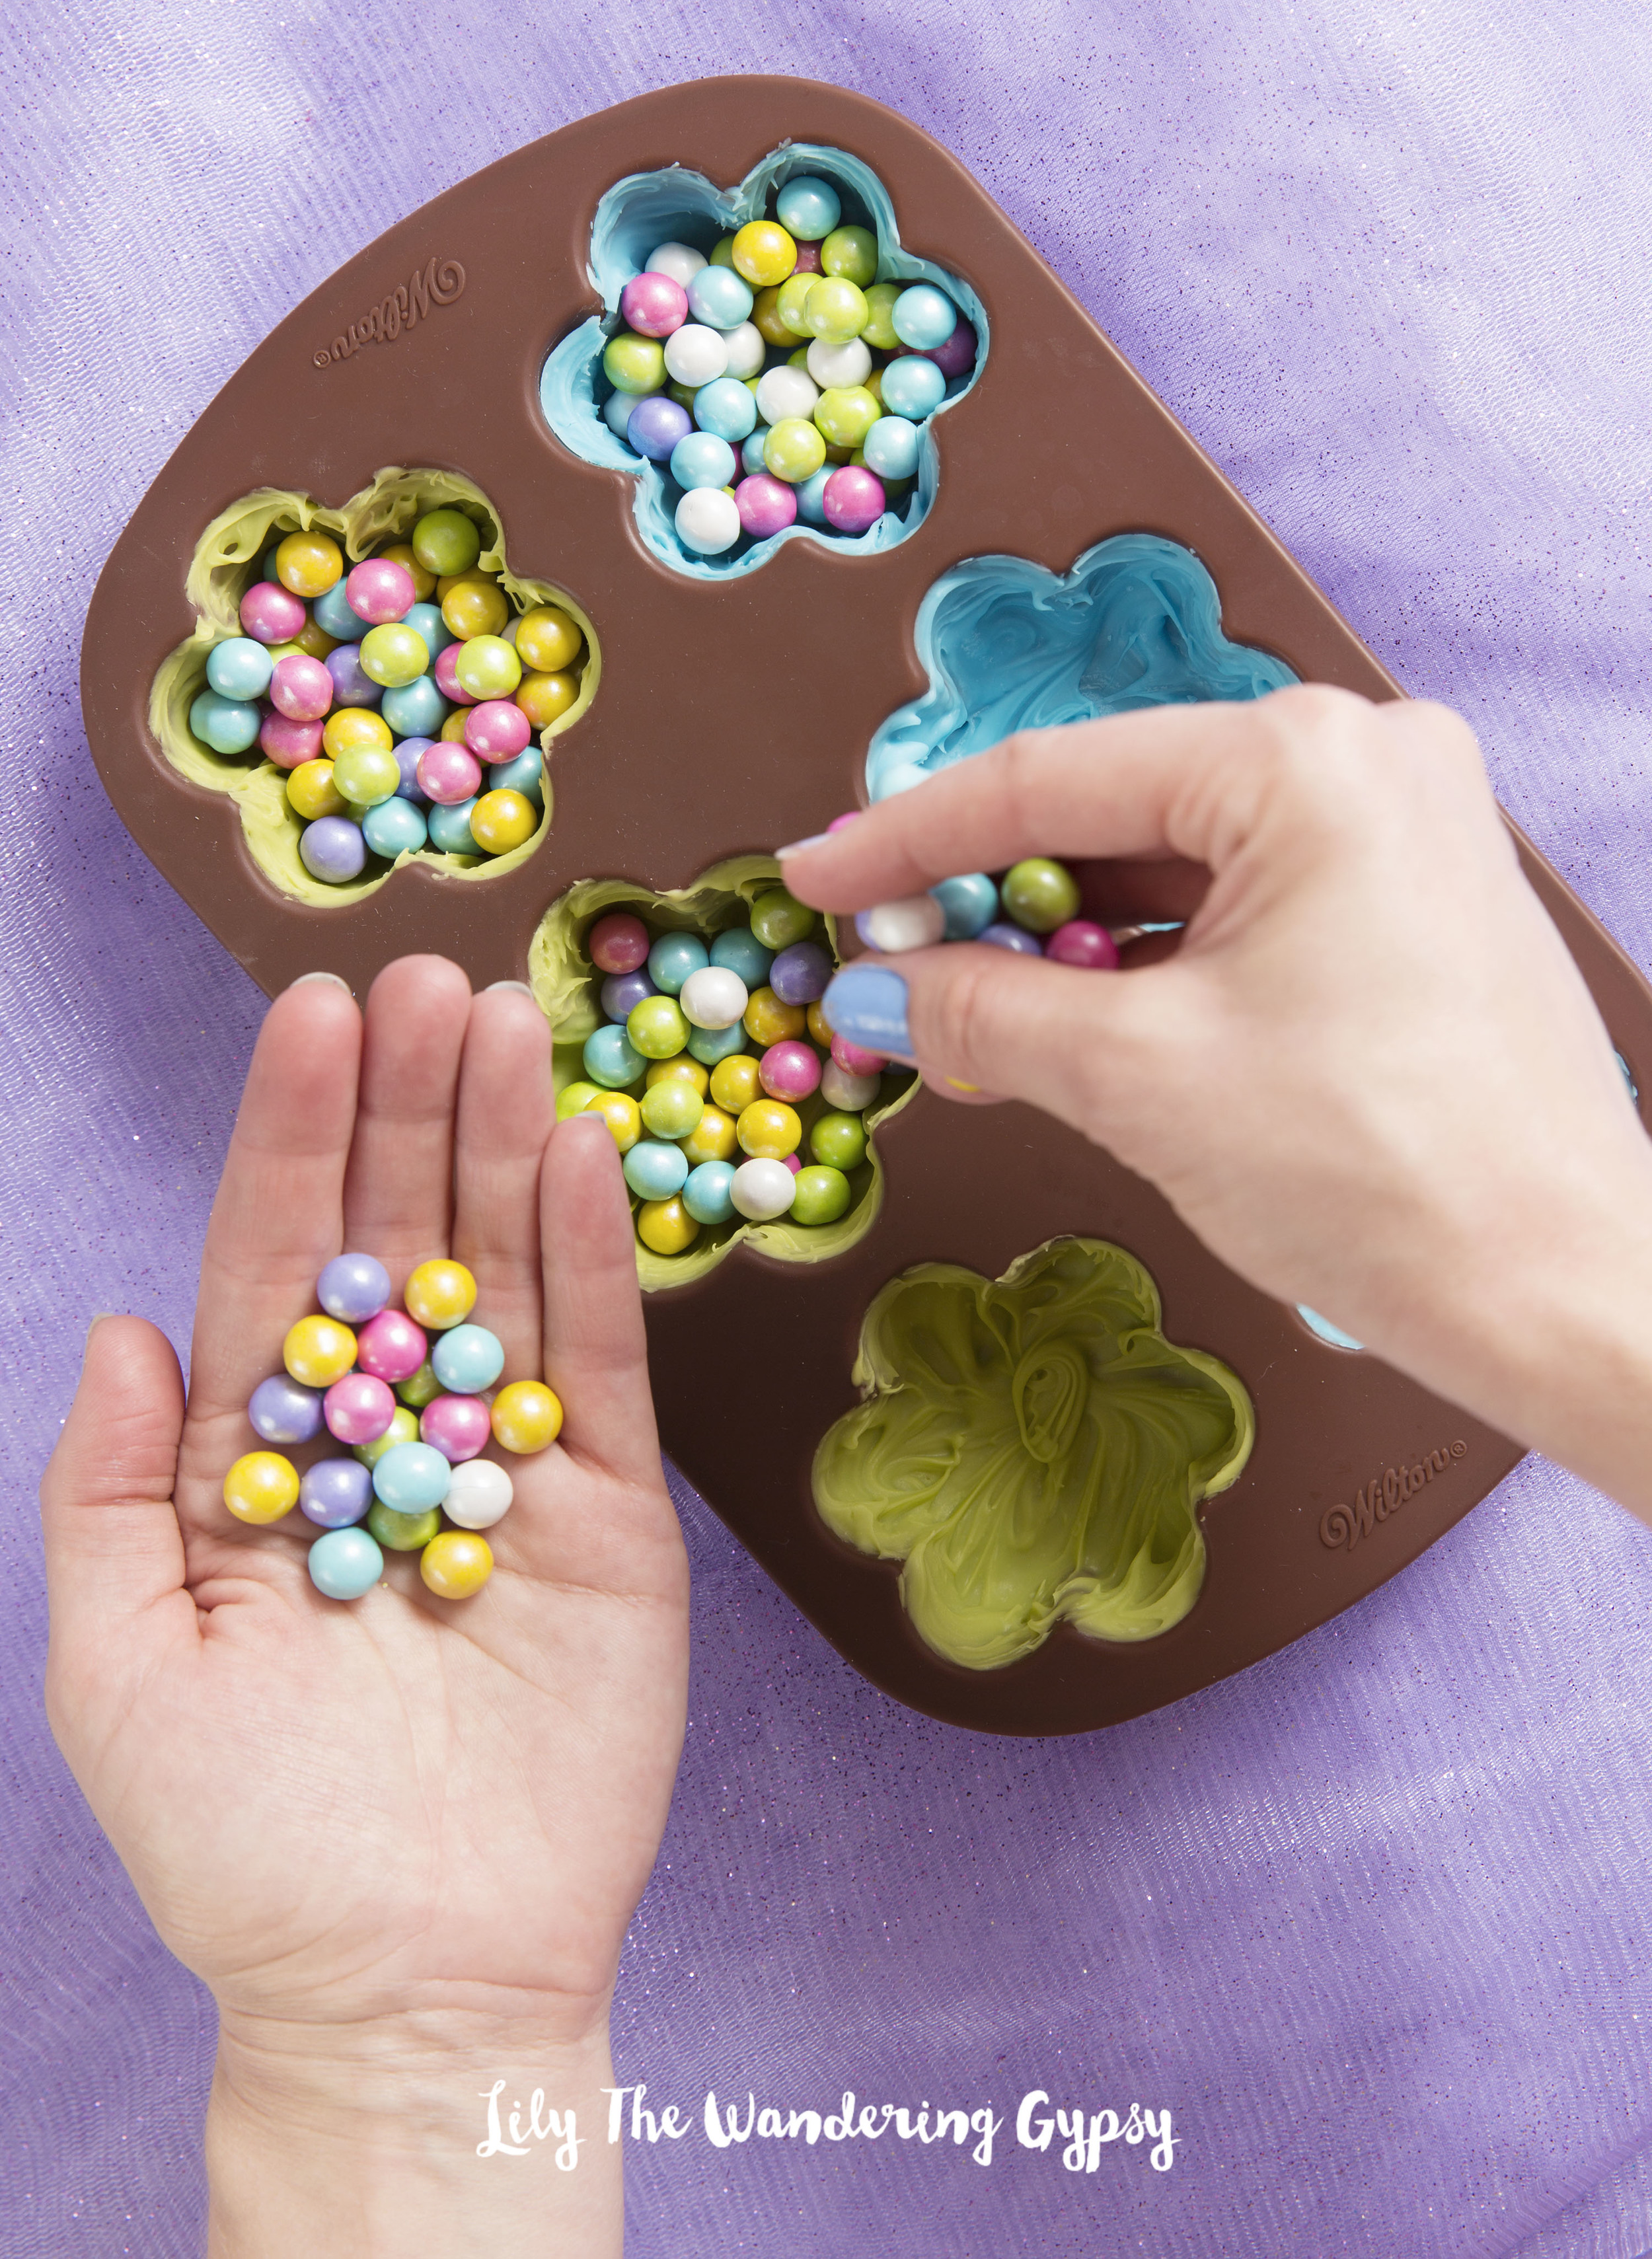 4.) Now, fill the candy shells with Candies, almost to the very top.